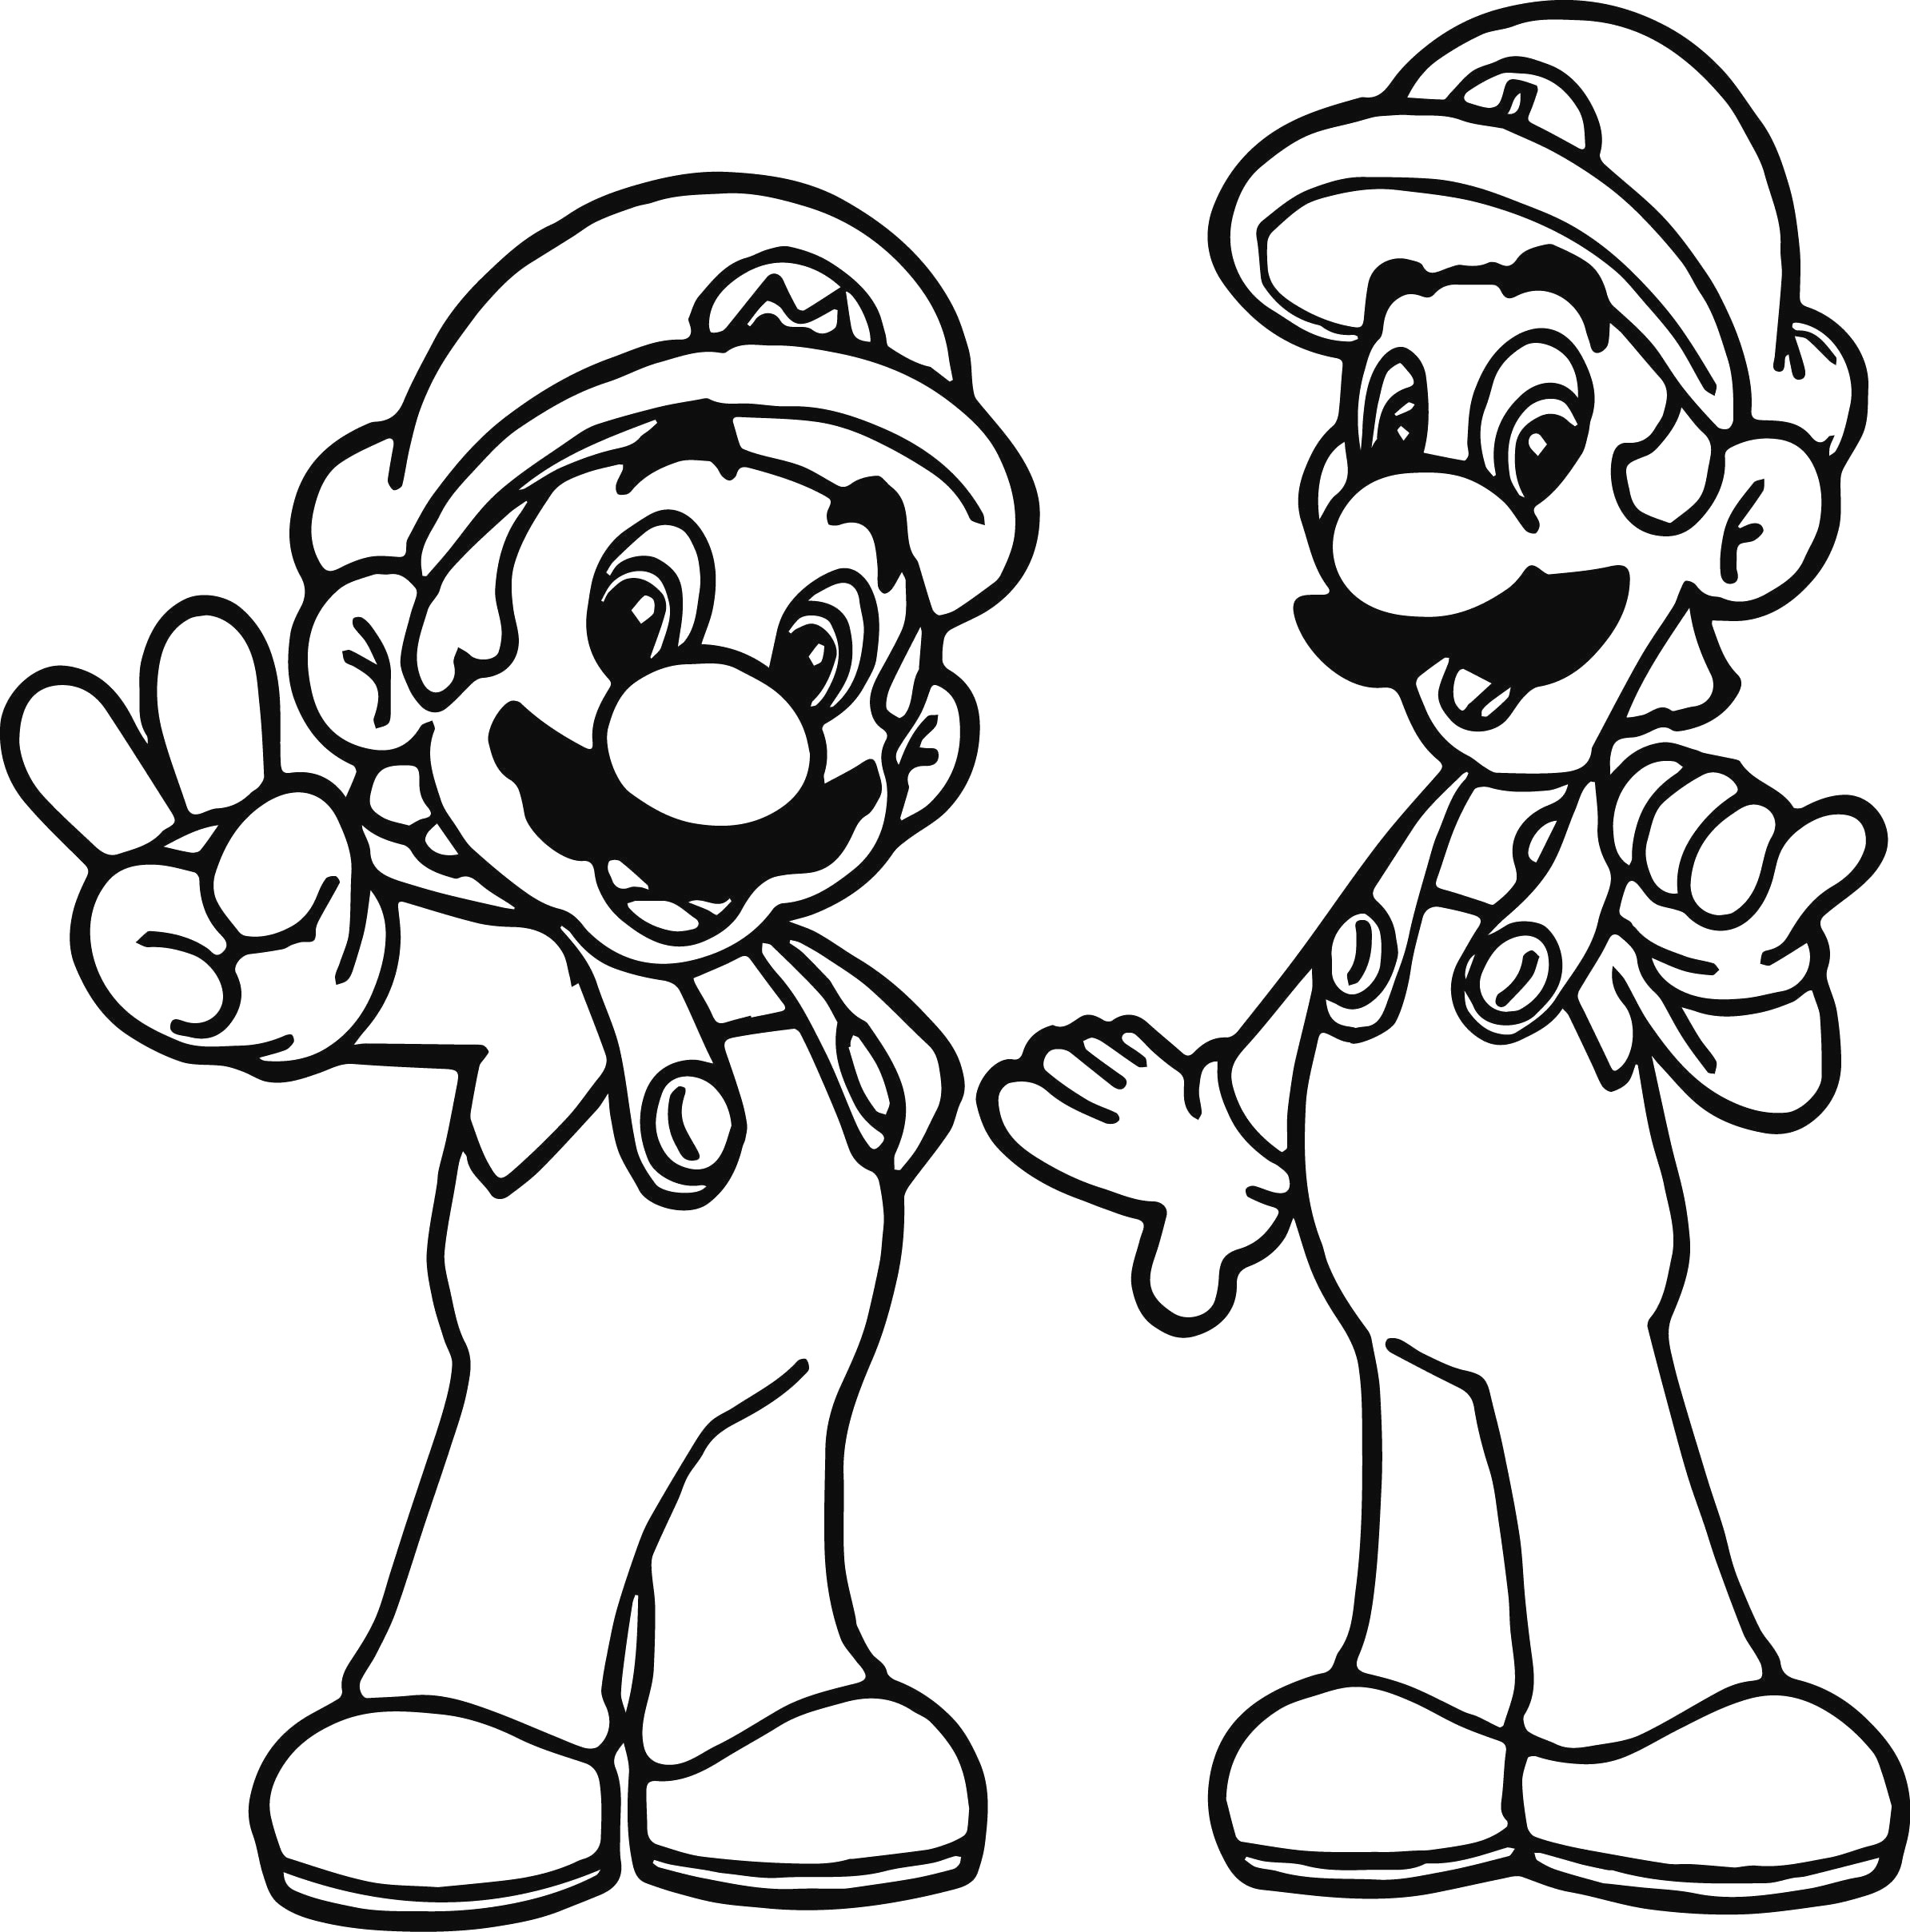 Mario Coloring Pages To Print Coloring Pages Mario And Luigi Coloring Page Pages Of Pictures To